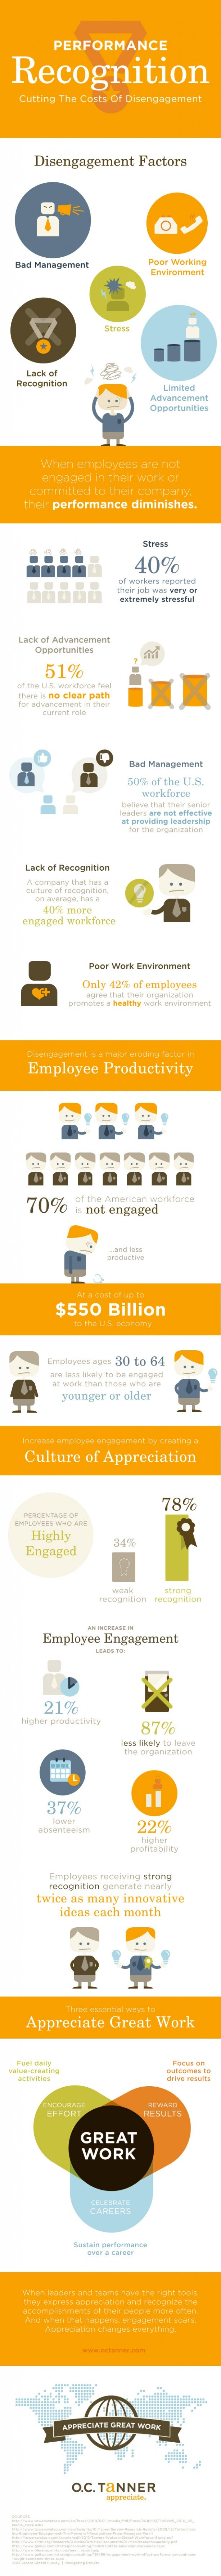 cutting the cost of disengagement infographic